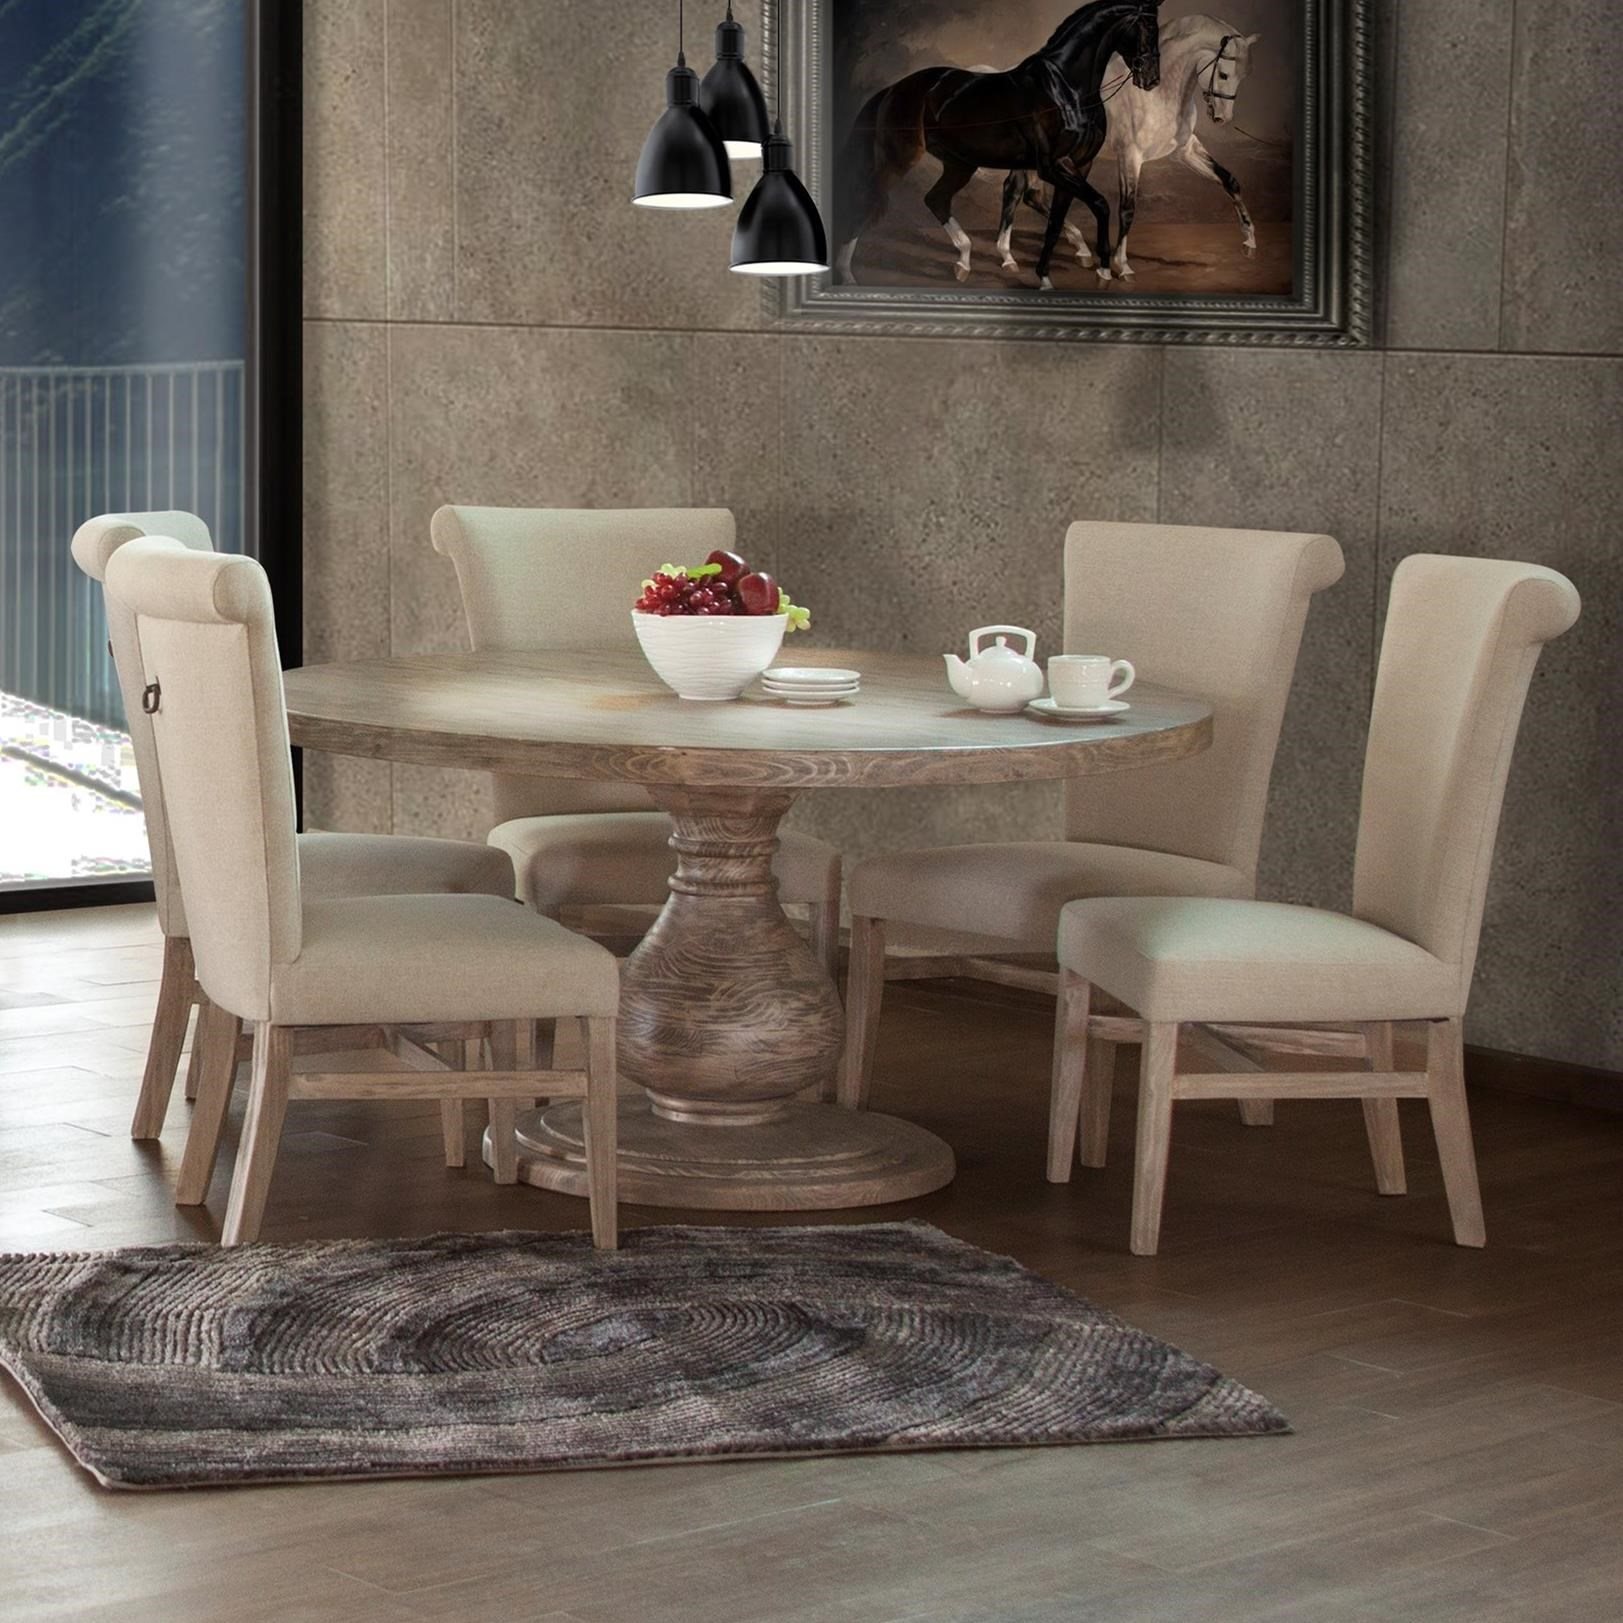 6 Piece Table and Chair Set